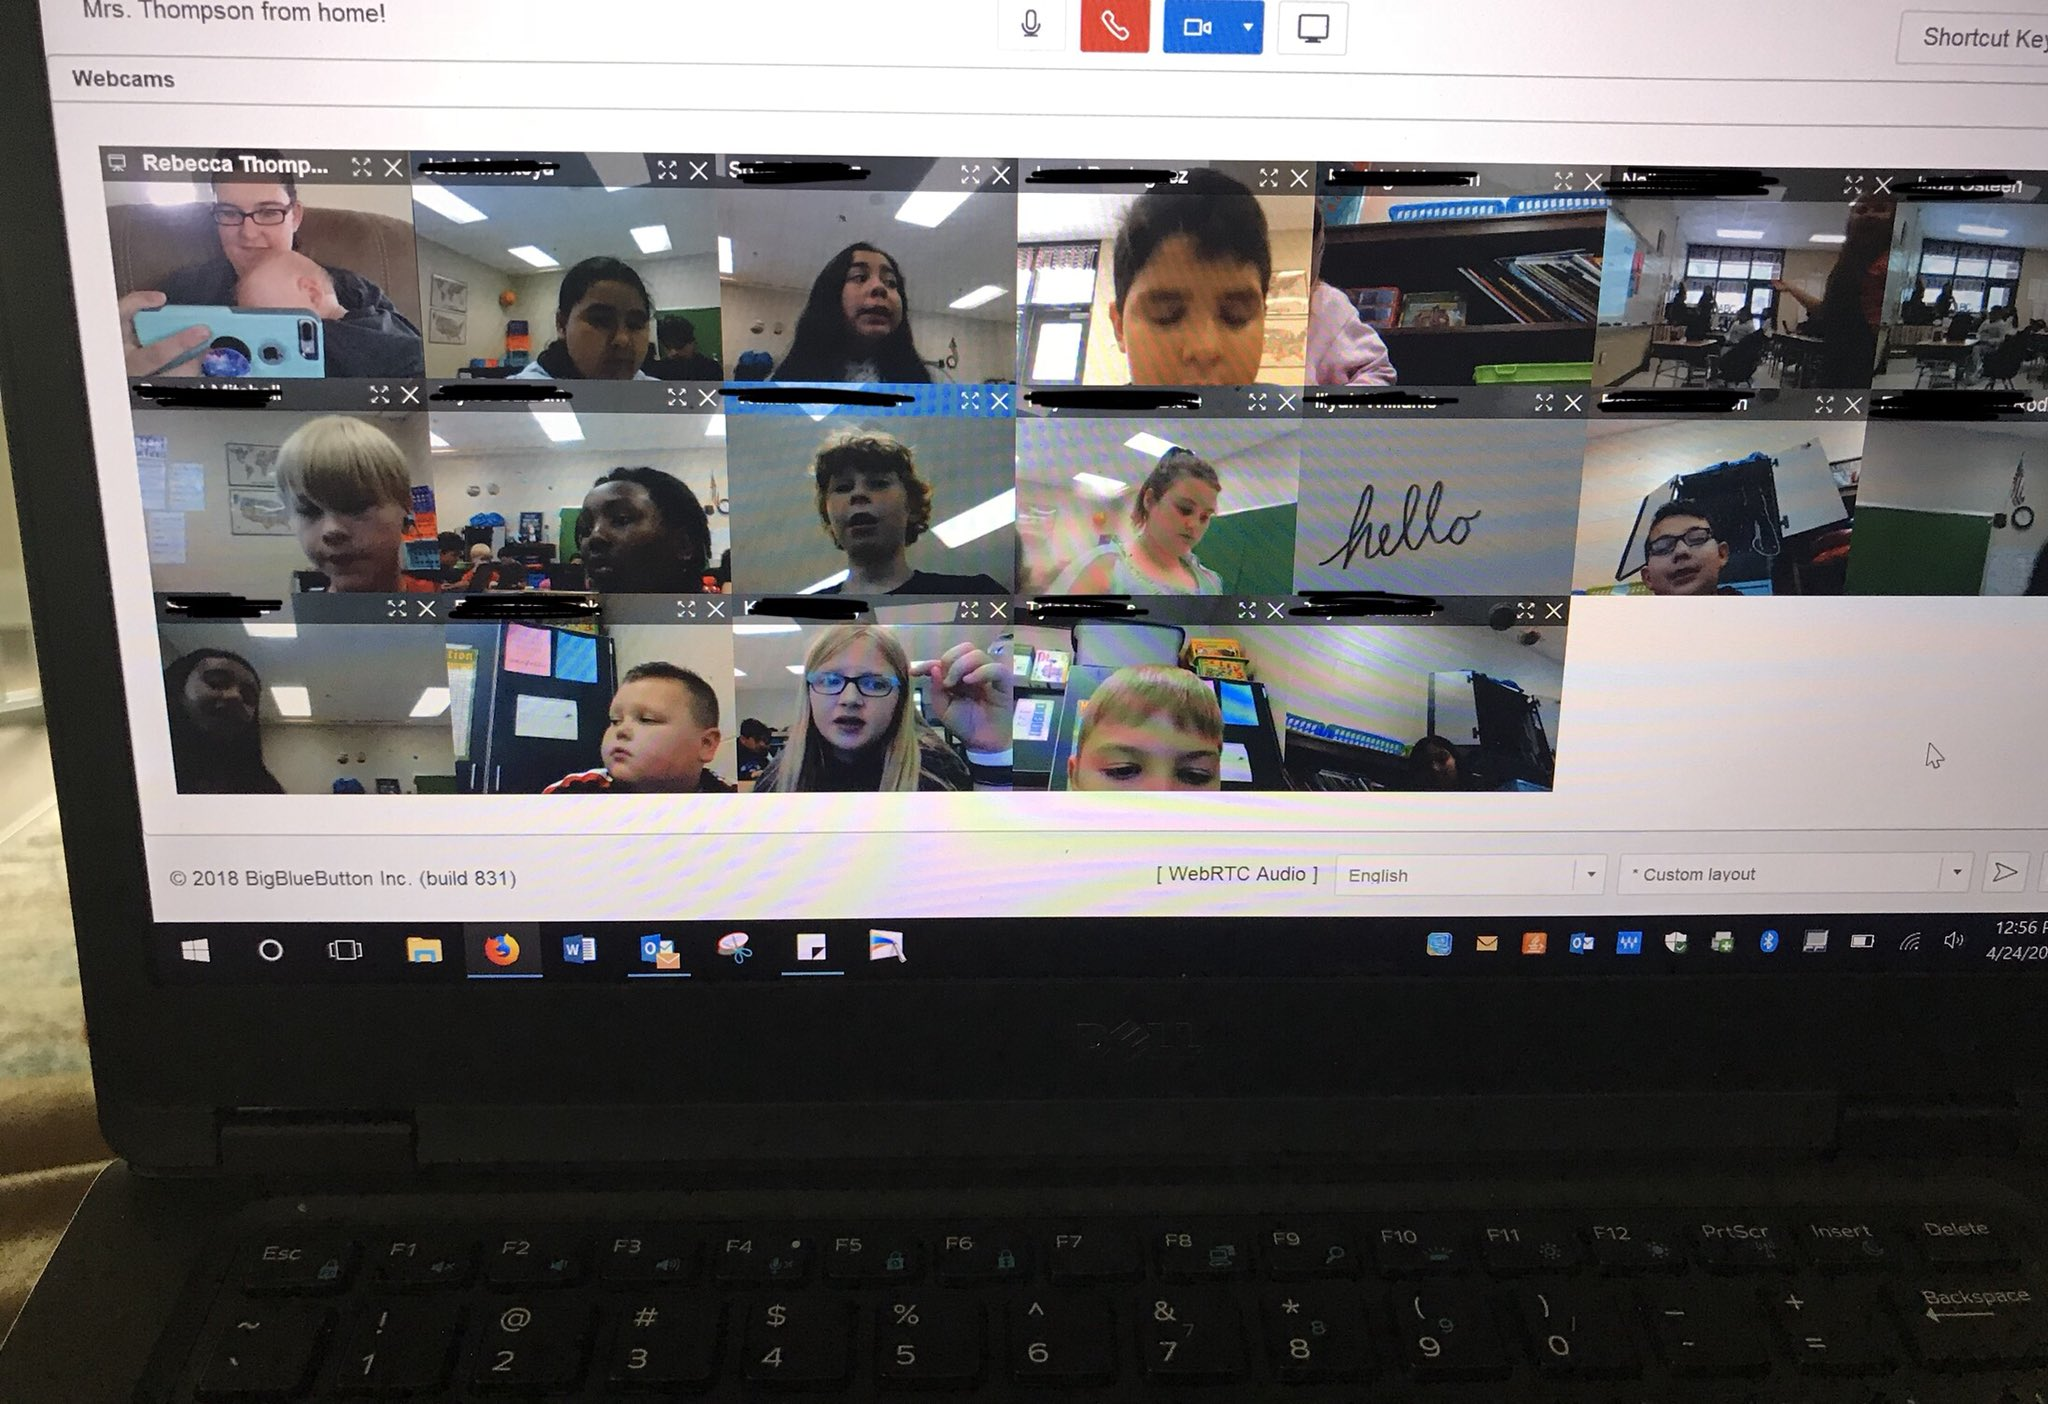 Thanks to @CanvasLMS, I was able to schedule a video conference with my whole class to discuss their math milestones review work and how their day has been going! I'm at home with a sweet sick baby but that didn't stop our class from meeting together! 👏🏼👏🏼👏🏼 https://t.co/5pqTQ9GHyC